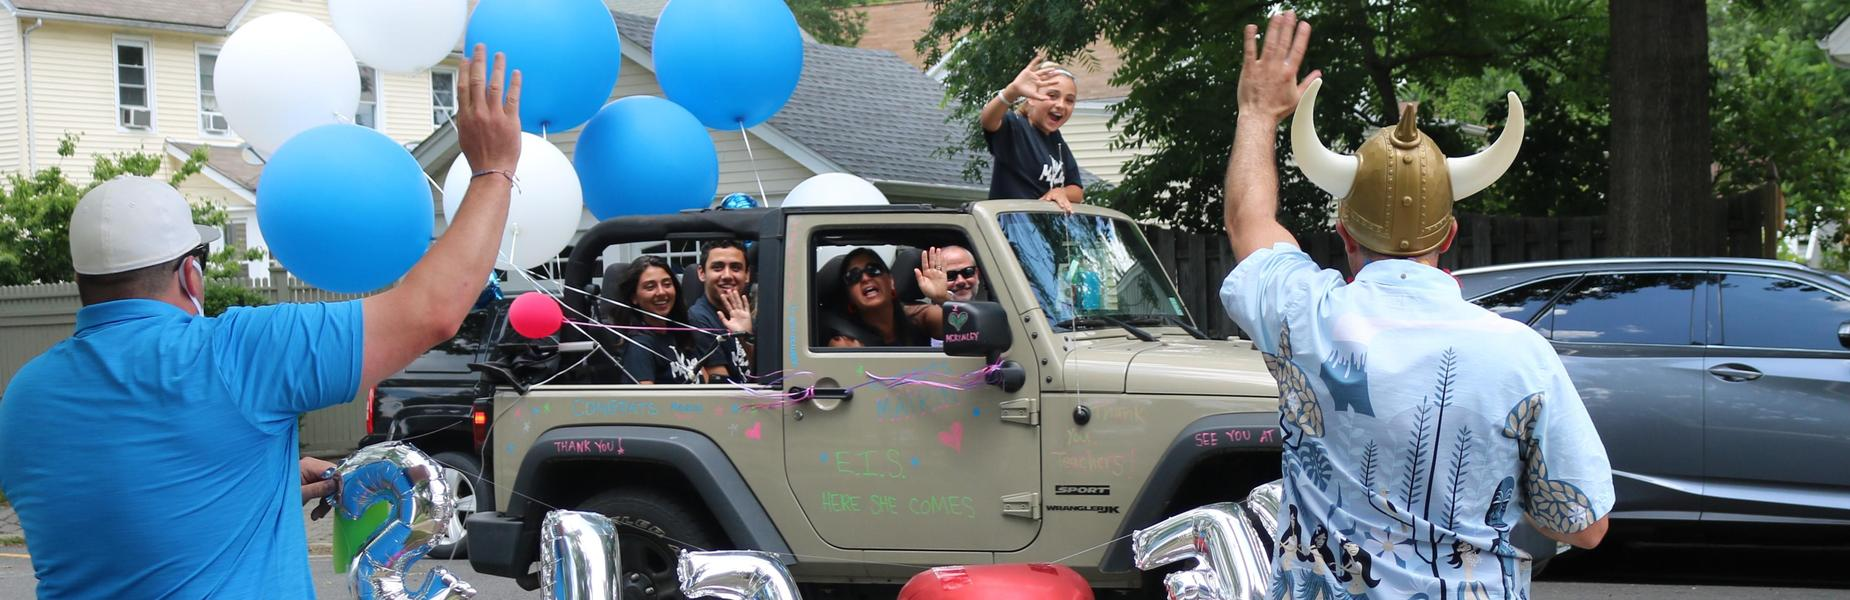 Photo of McKinley 5th grader and family waving to 5th grade teachers during Grade 5 Clap Out Car Parade.